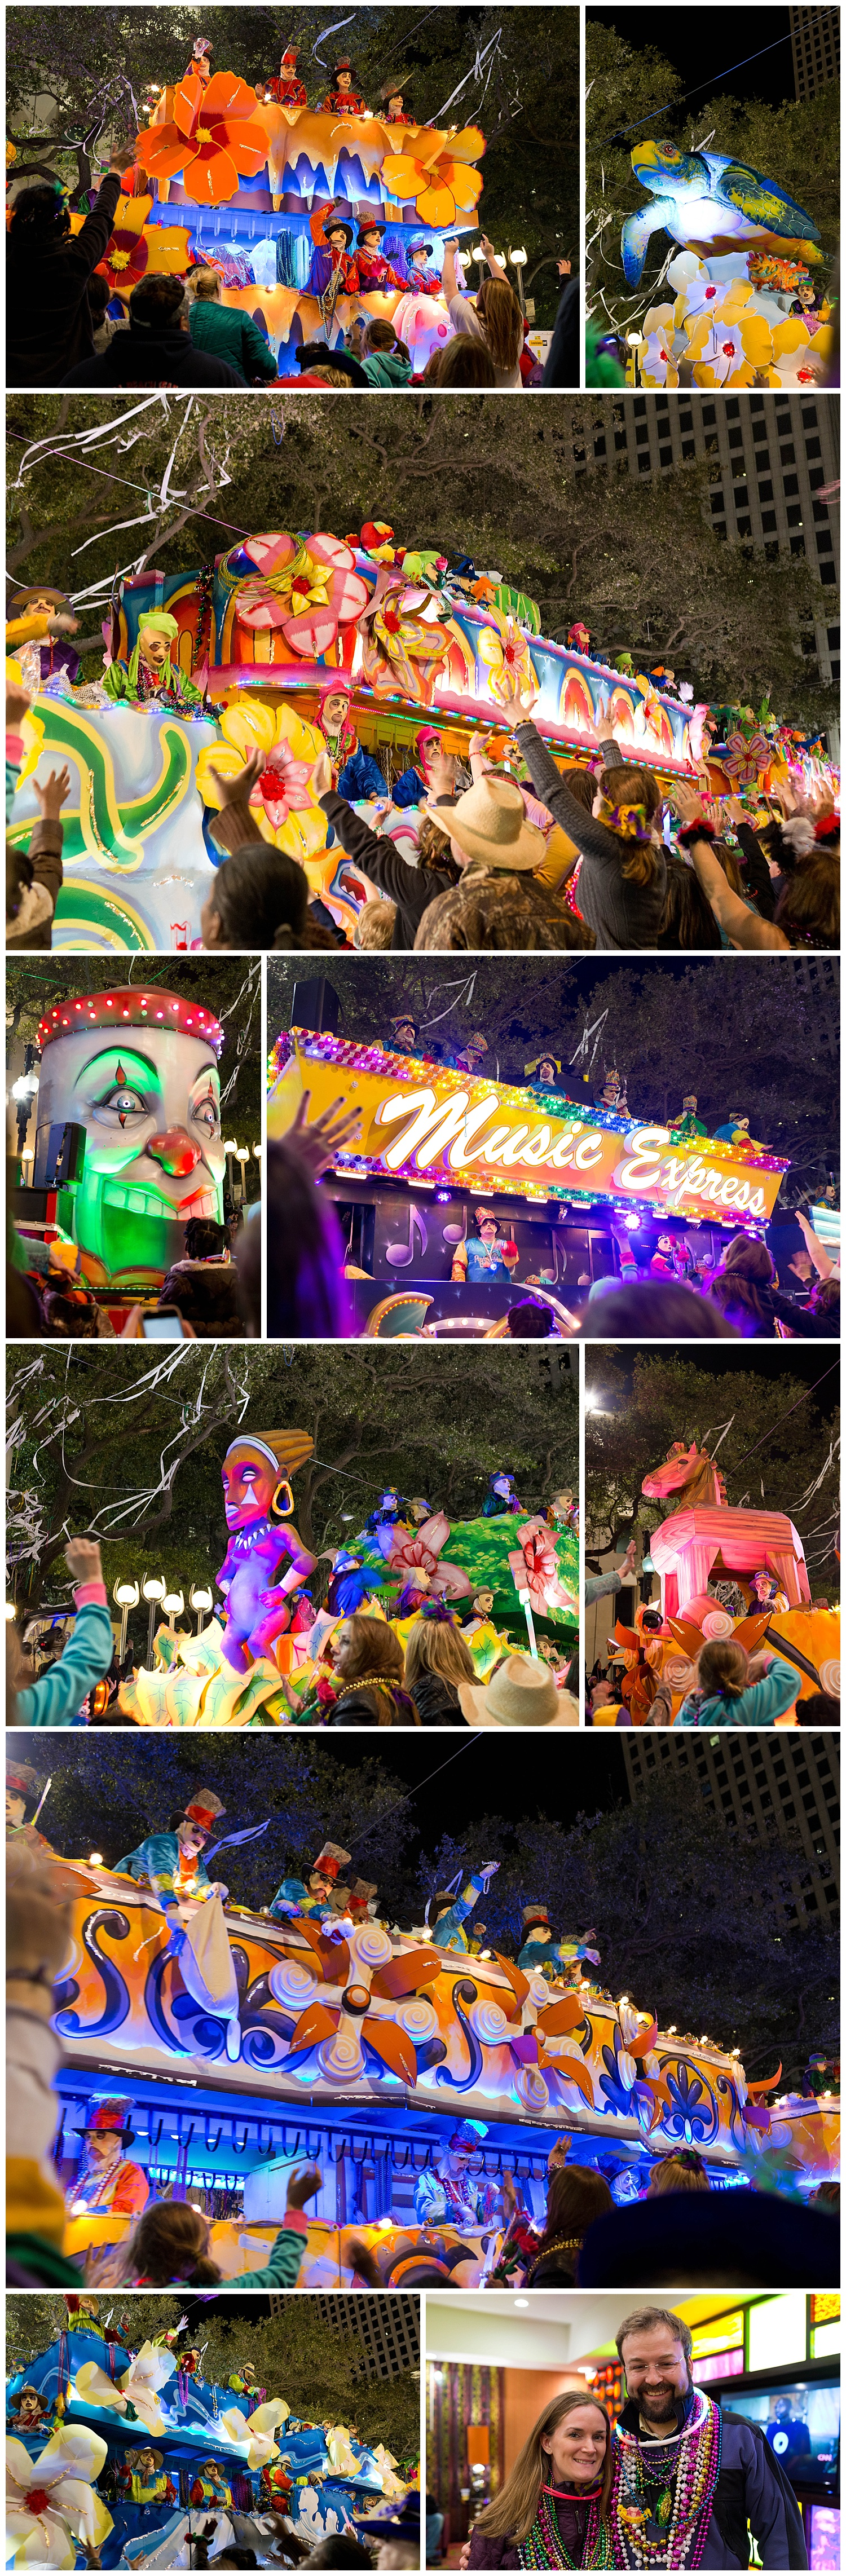 Endymion parade, New Orleans